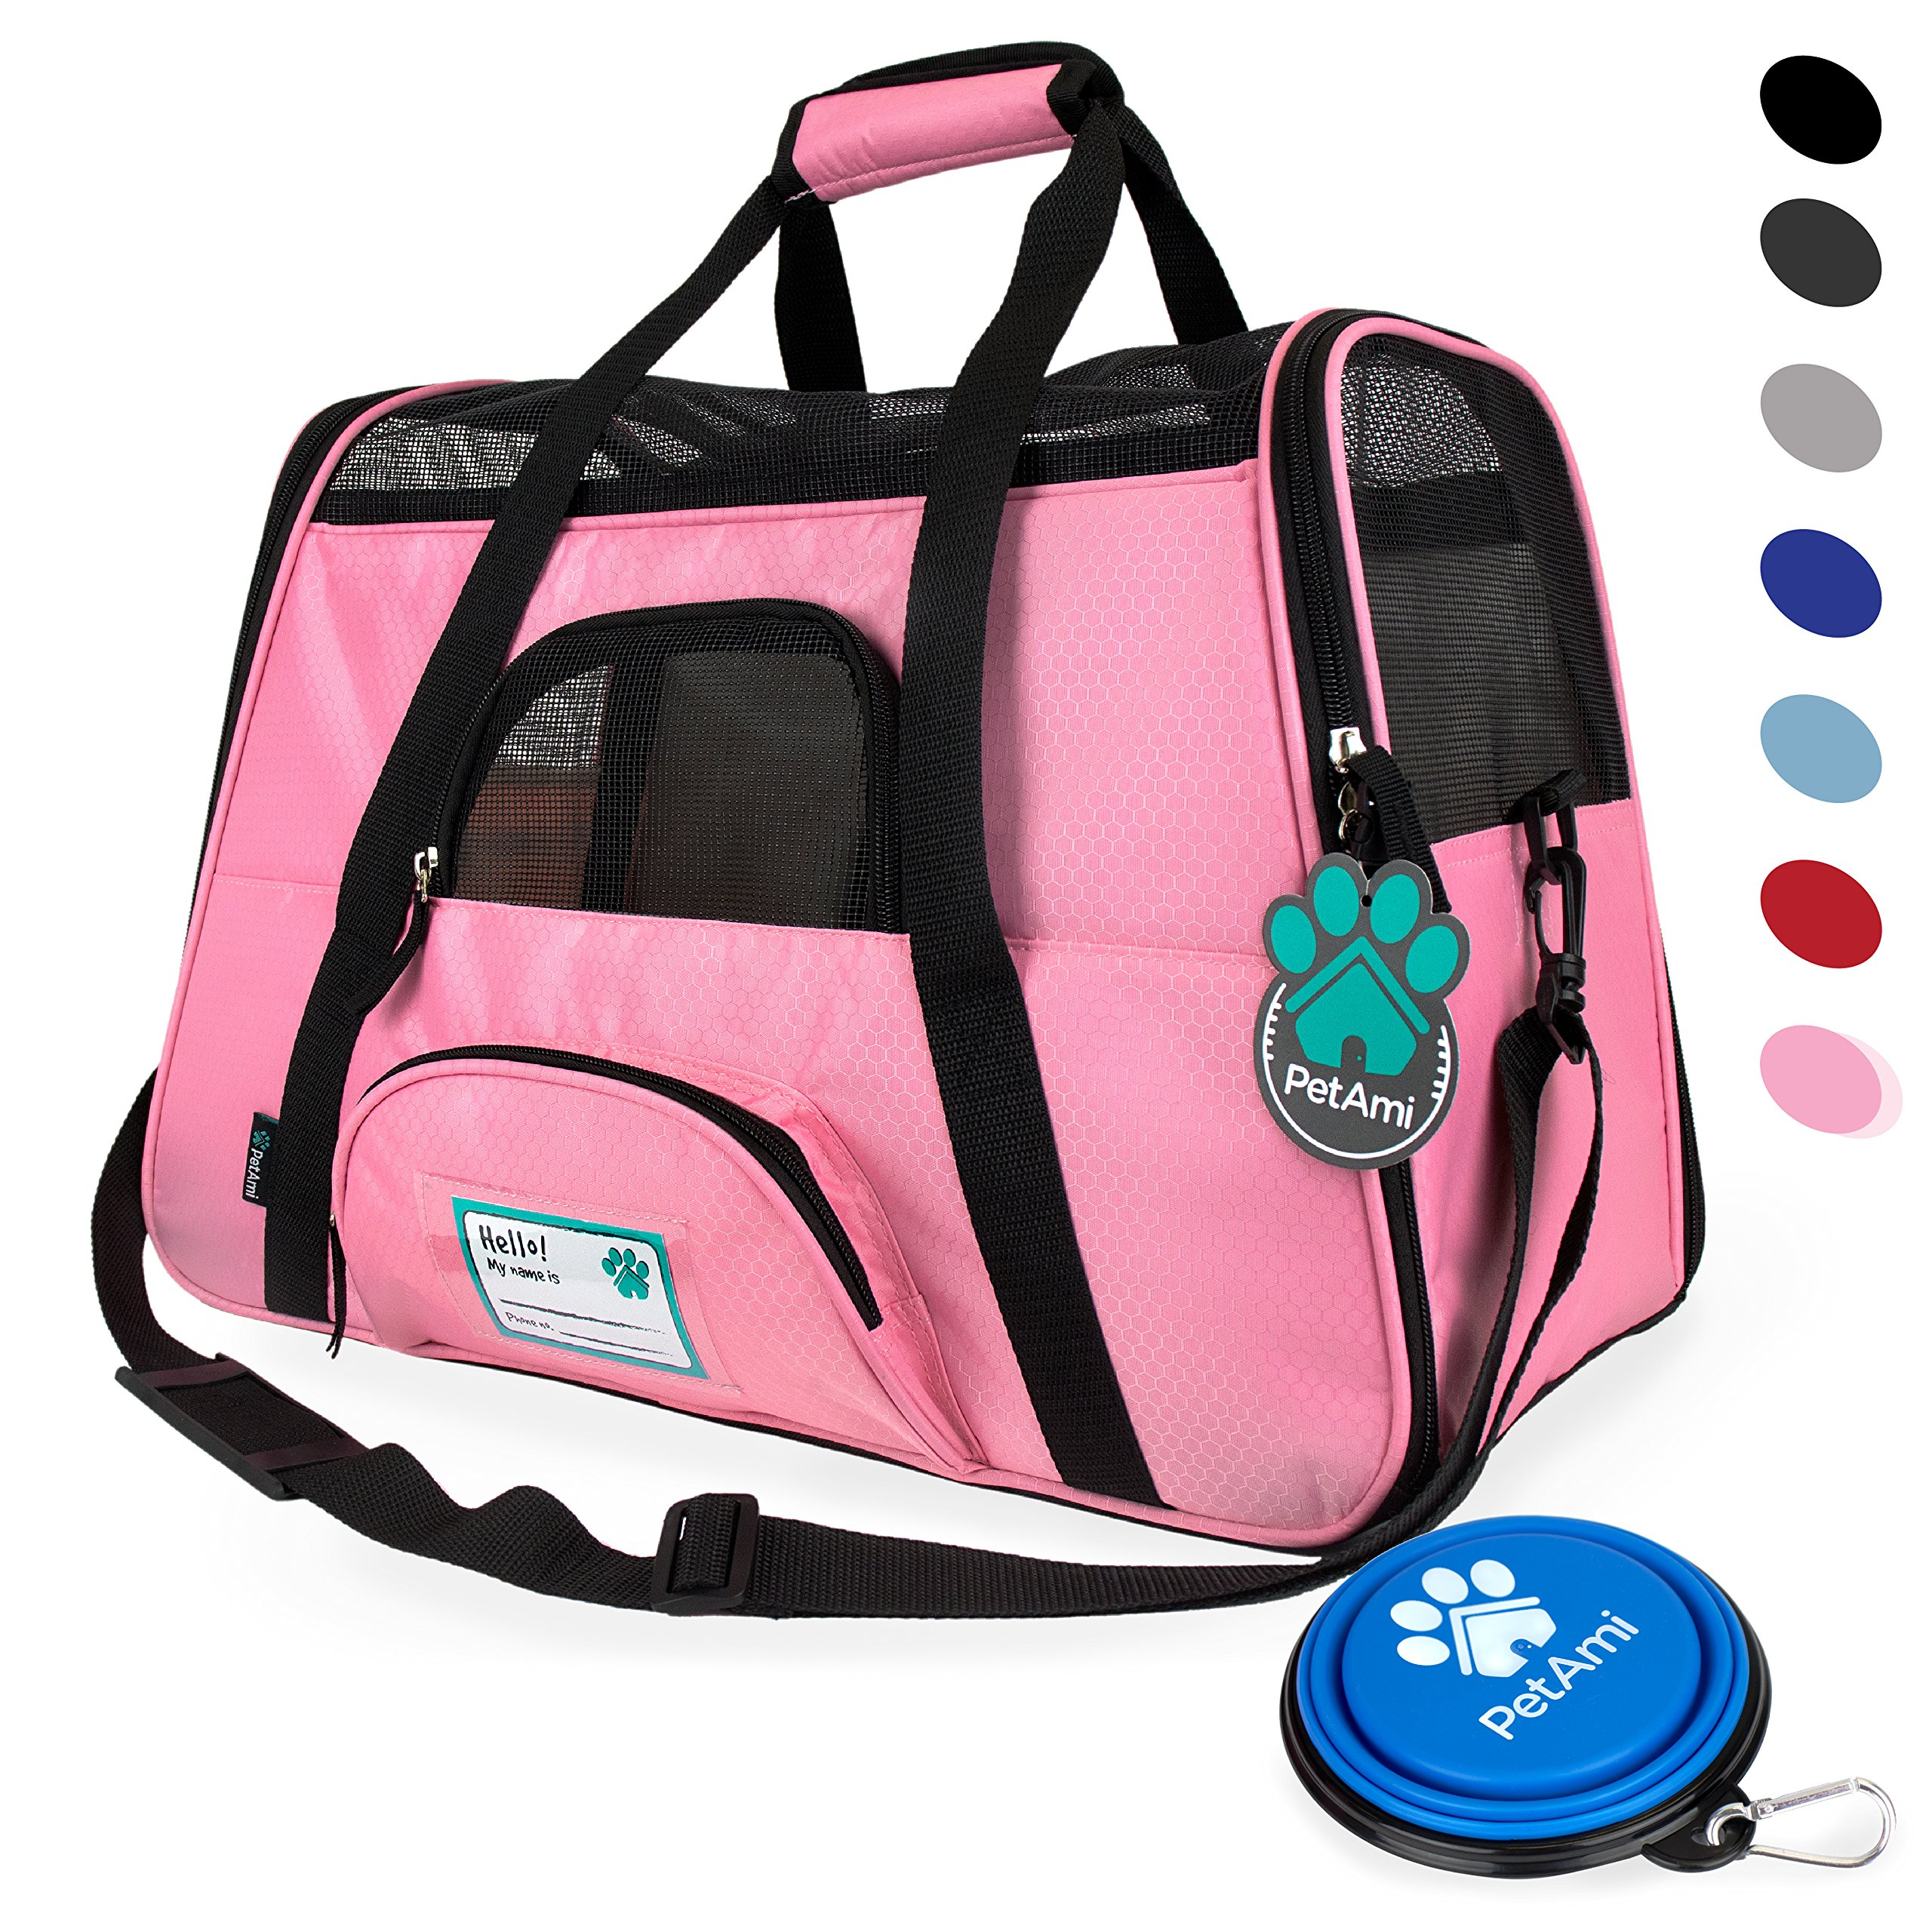 PetAmi Premium Airline Approved Soft-Sided Pet Travel Carrier by Ventilated, Comfortable Design with Safety Features   Ideal for Small to Medium Sized Cats, Dogs, and Pets